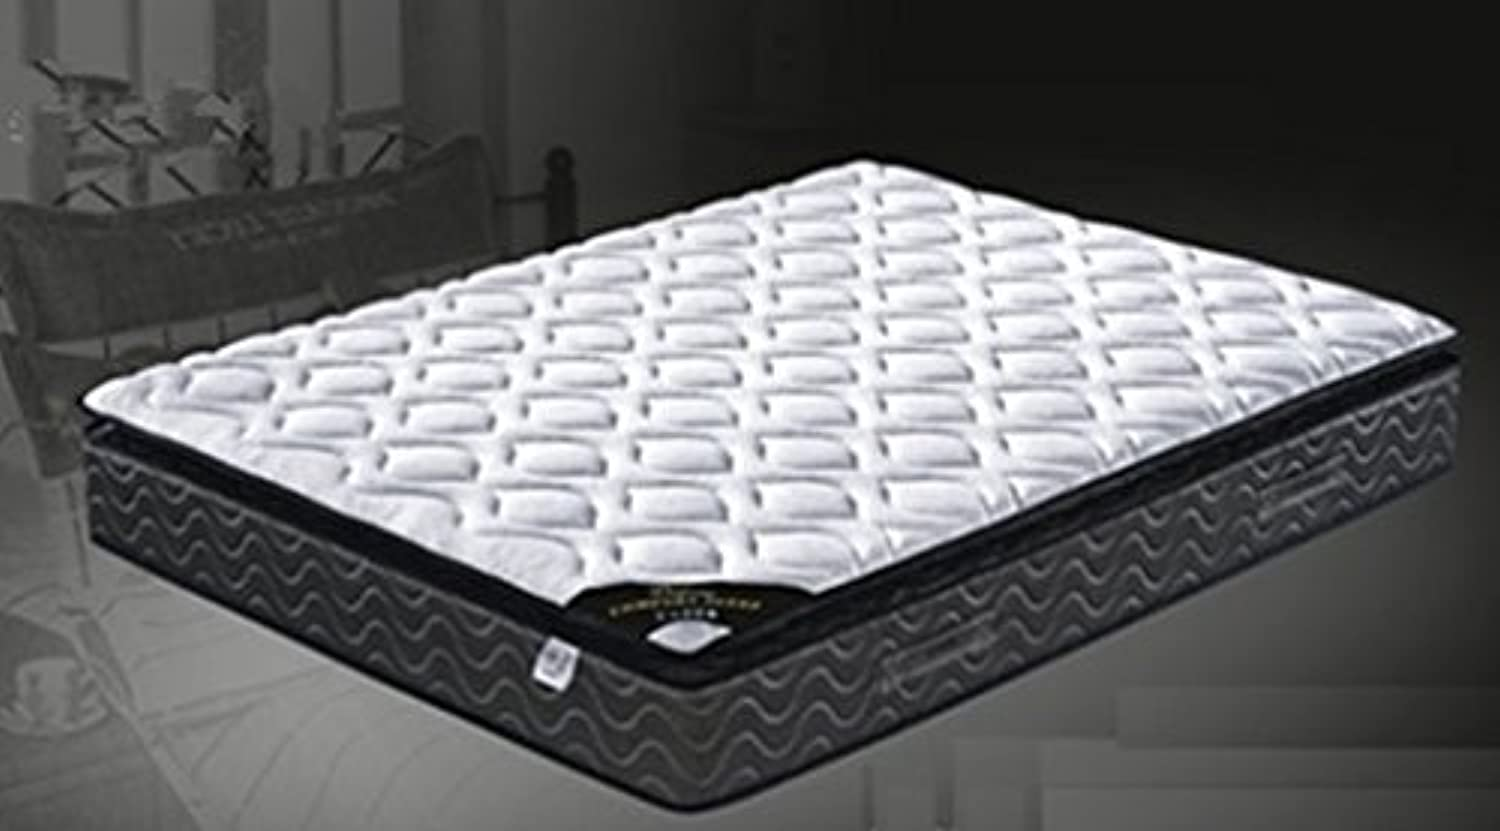 Priceworth Luna1580 Continuous Spring Pillow Top Matterss(Single, Double, Queen) (Single Size)